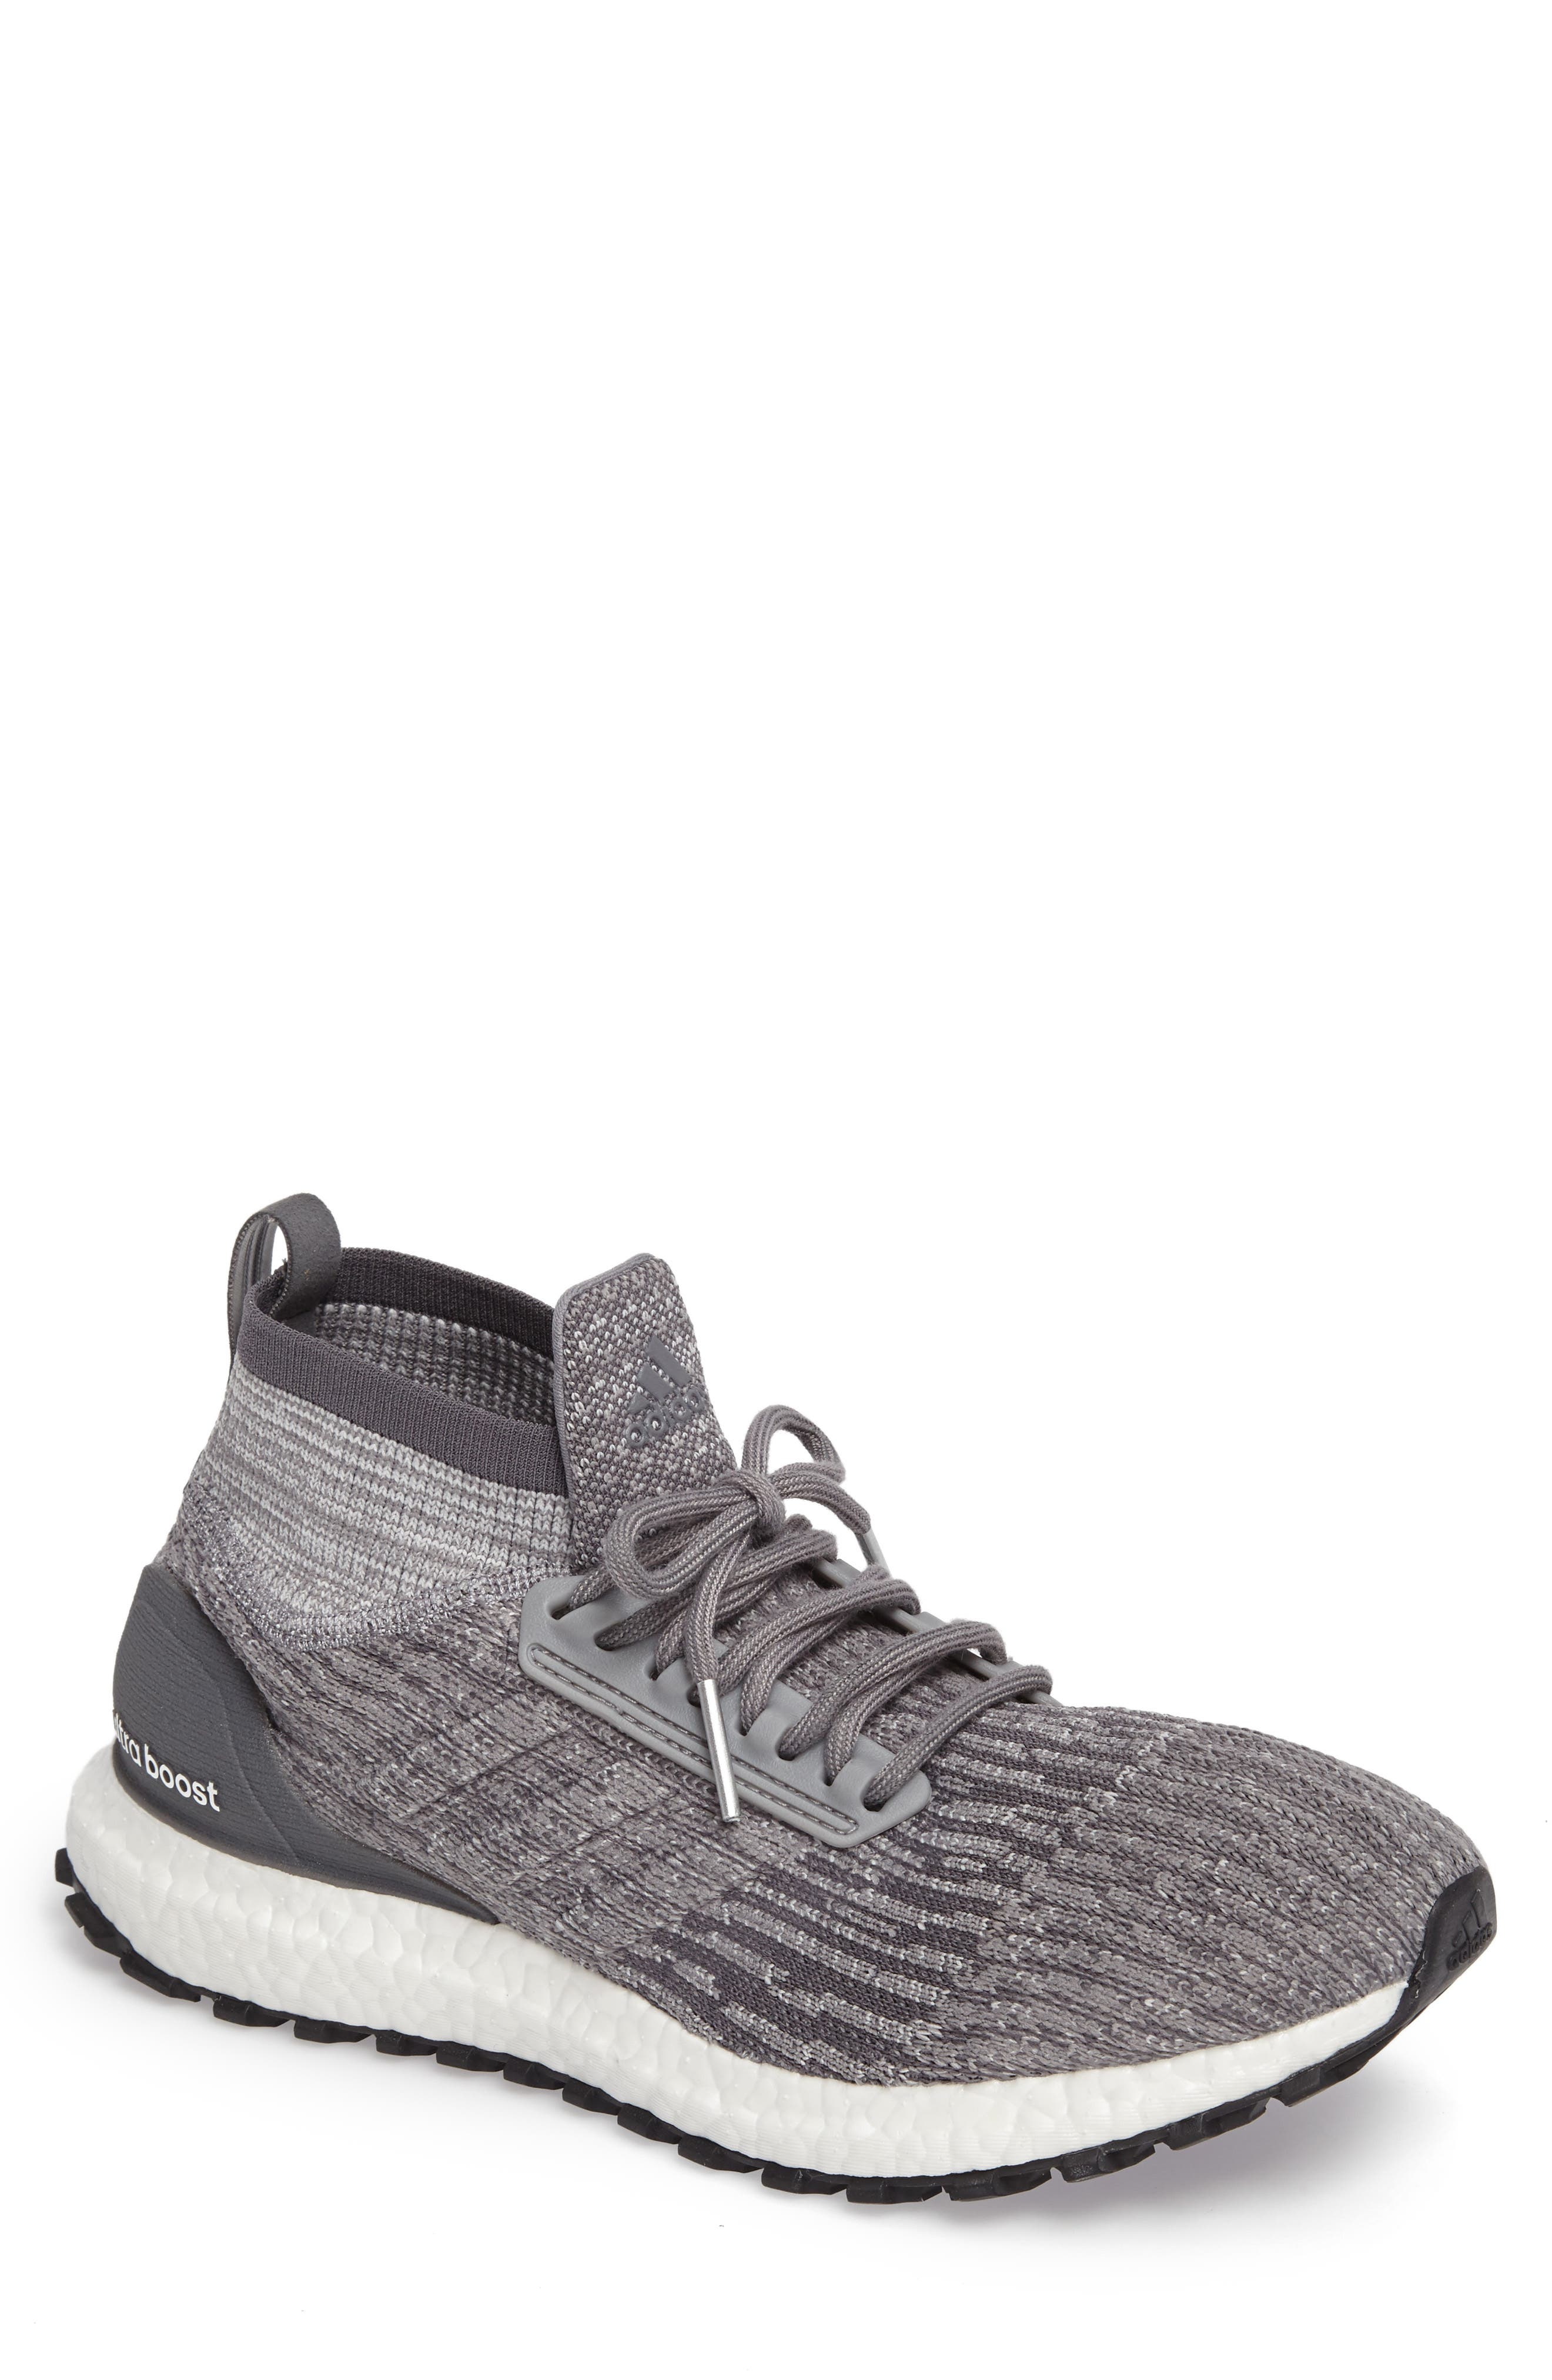 Alternate Image 1 Selected - adidas UltraBOOST All Terrain Water Resistant Running Shoe (Men)